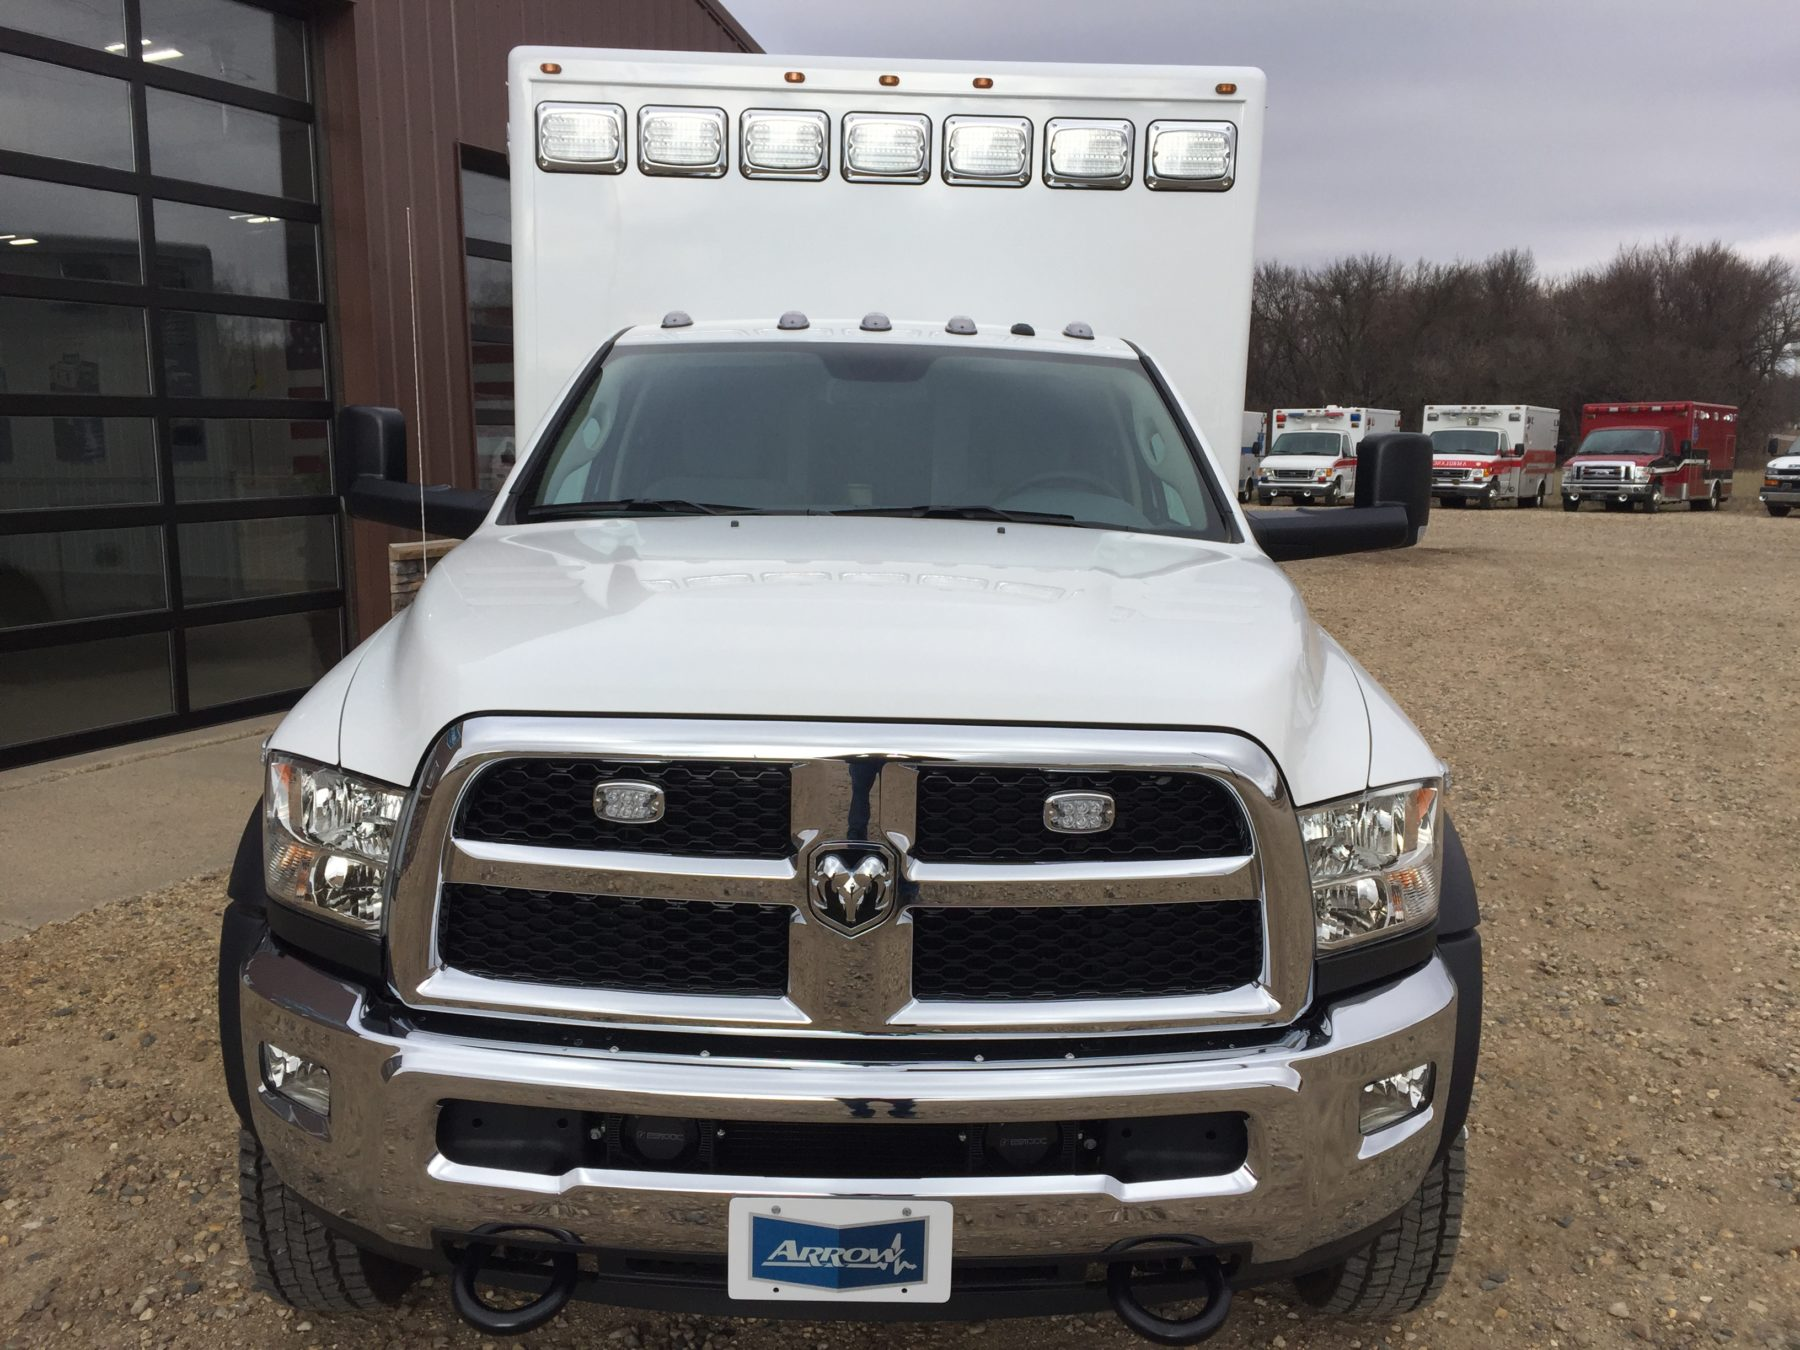 2017 Ram 4500 4x4 Heavy Duty Ambulance For Sale – Picture 7